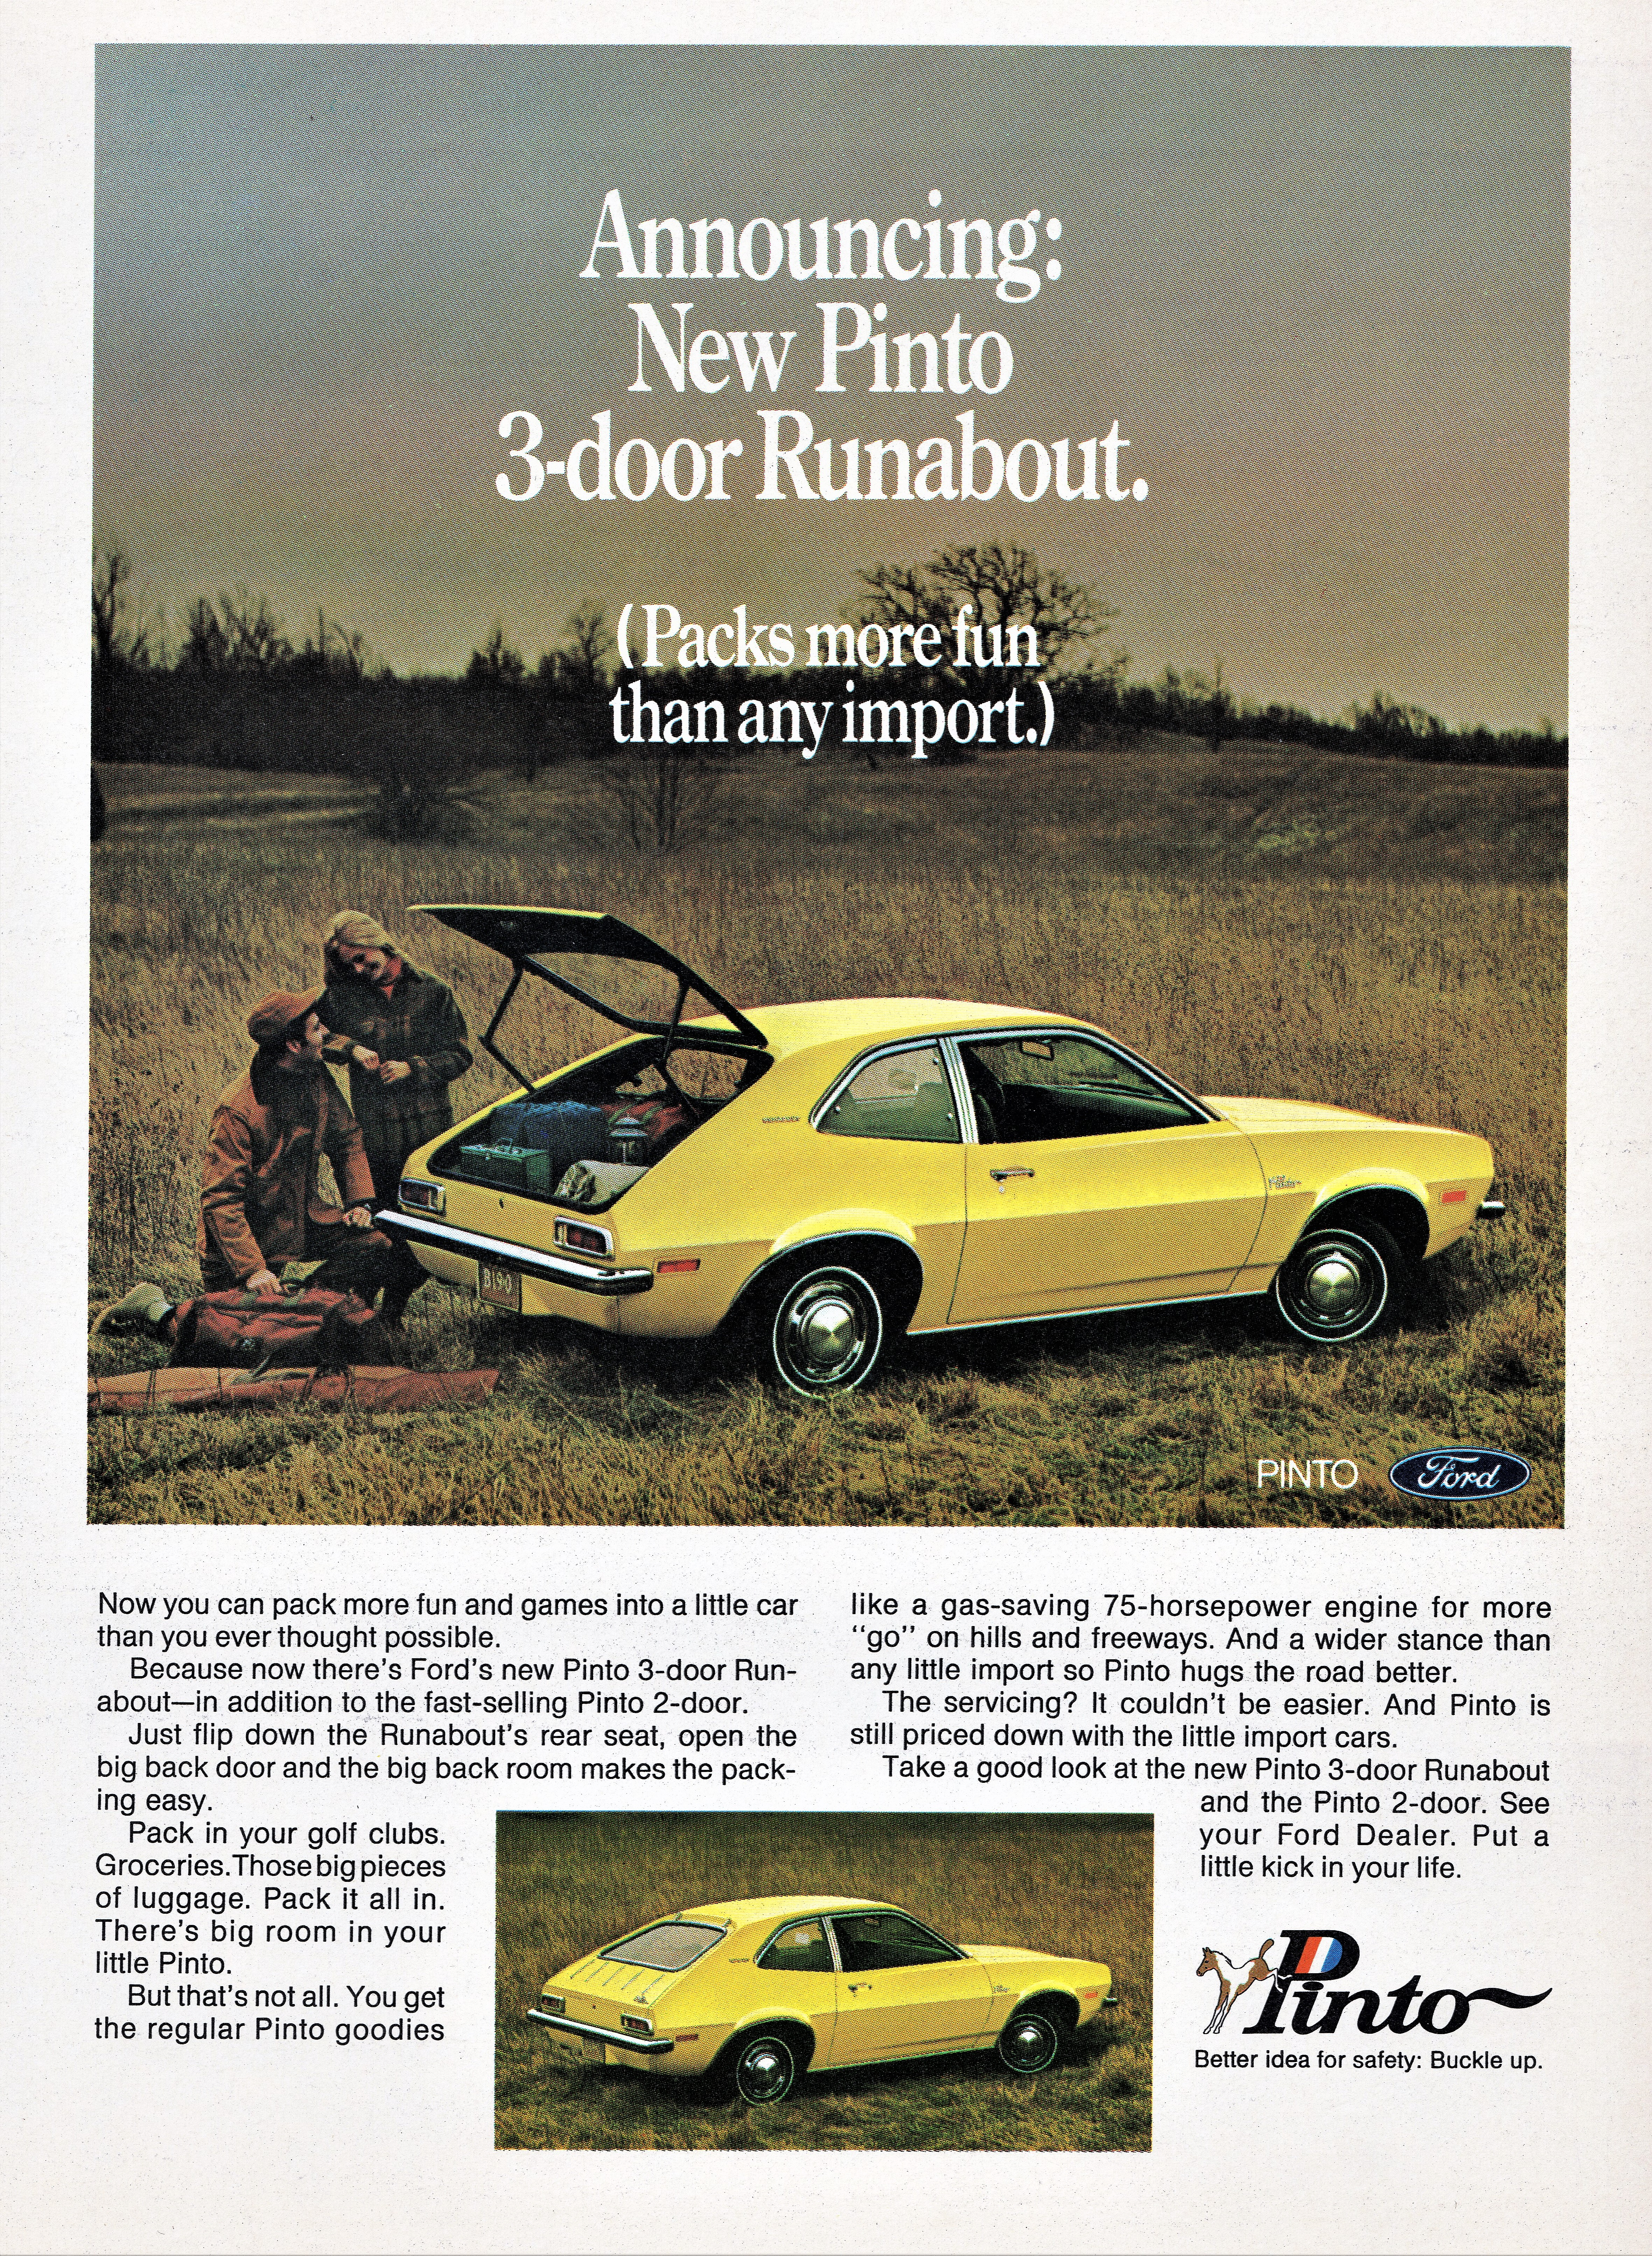 1971 Ford Pinto 3-Door Runabout